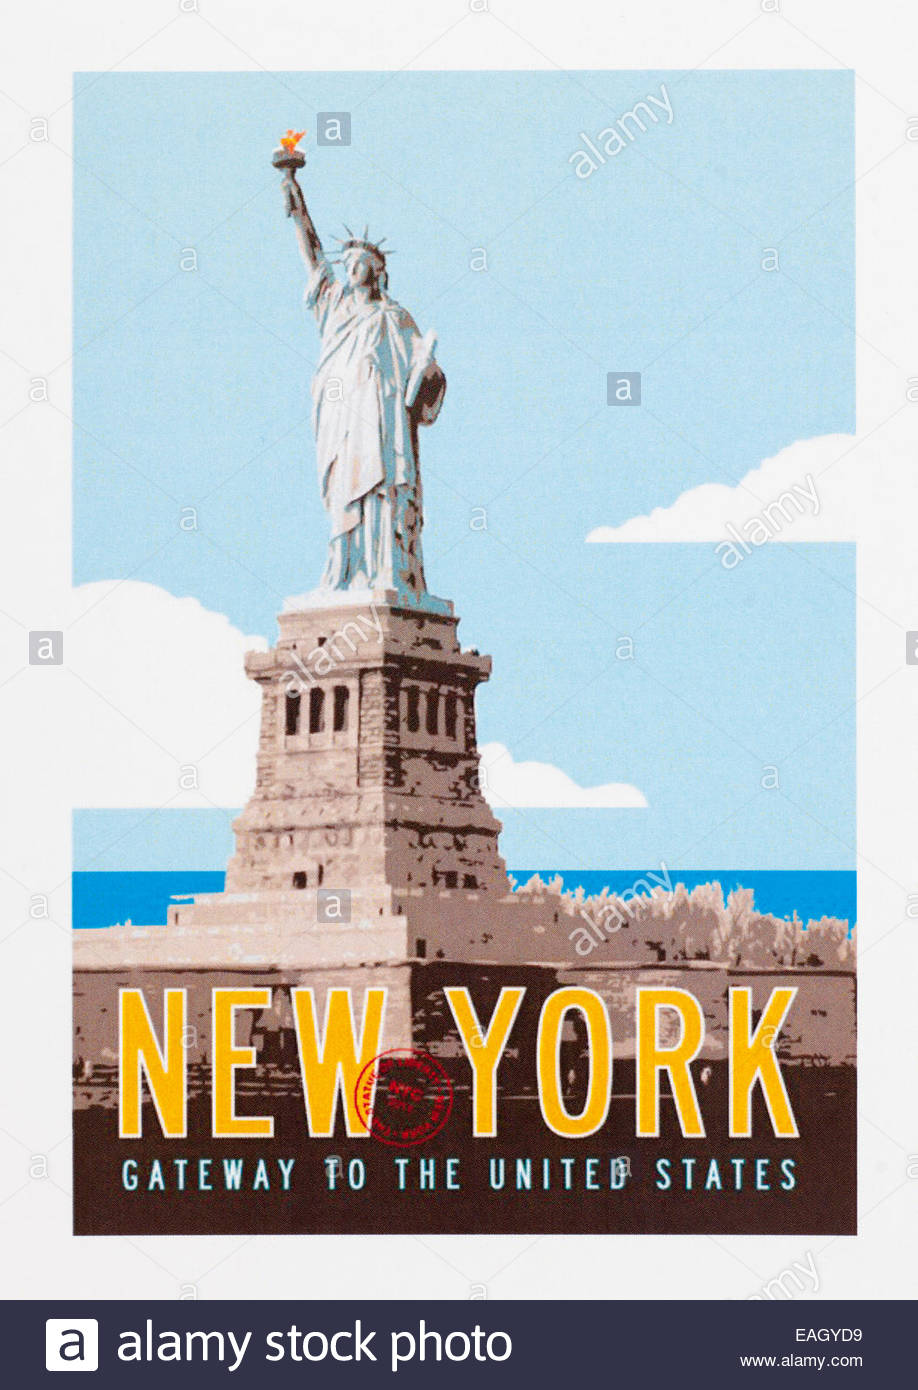 vintage travel poster advertising new york gateway to the united stock photo 75360805 alamy. Black Bedroom Furniture Sets. Home Design Ideas